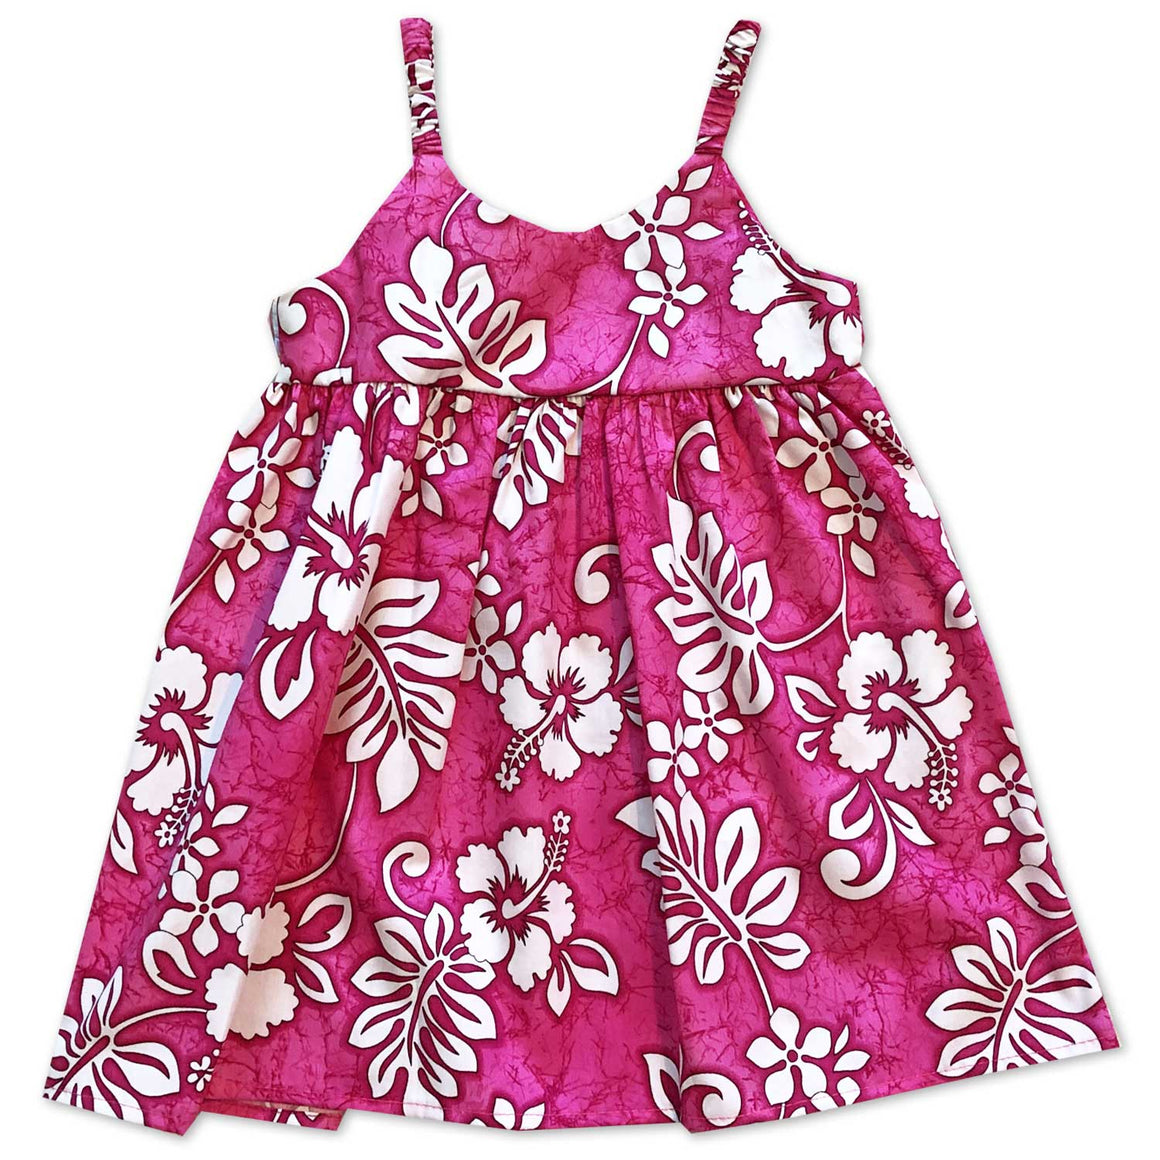 Tropic Flavor Pink Bungee Dress